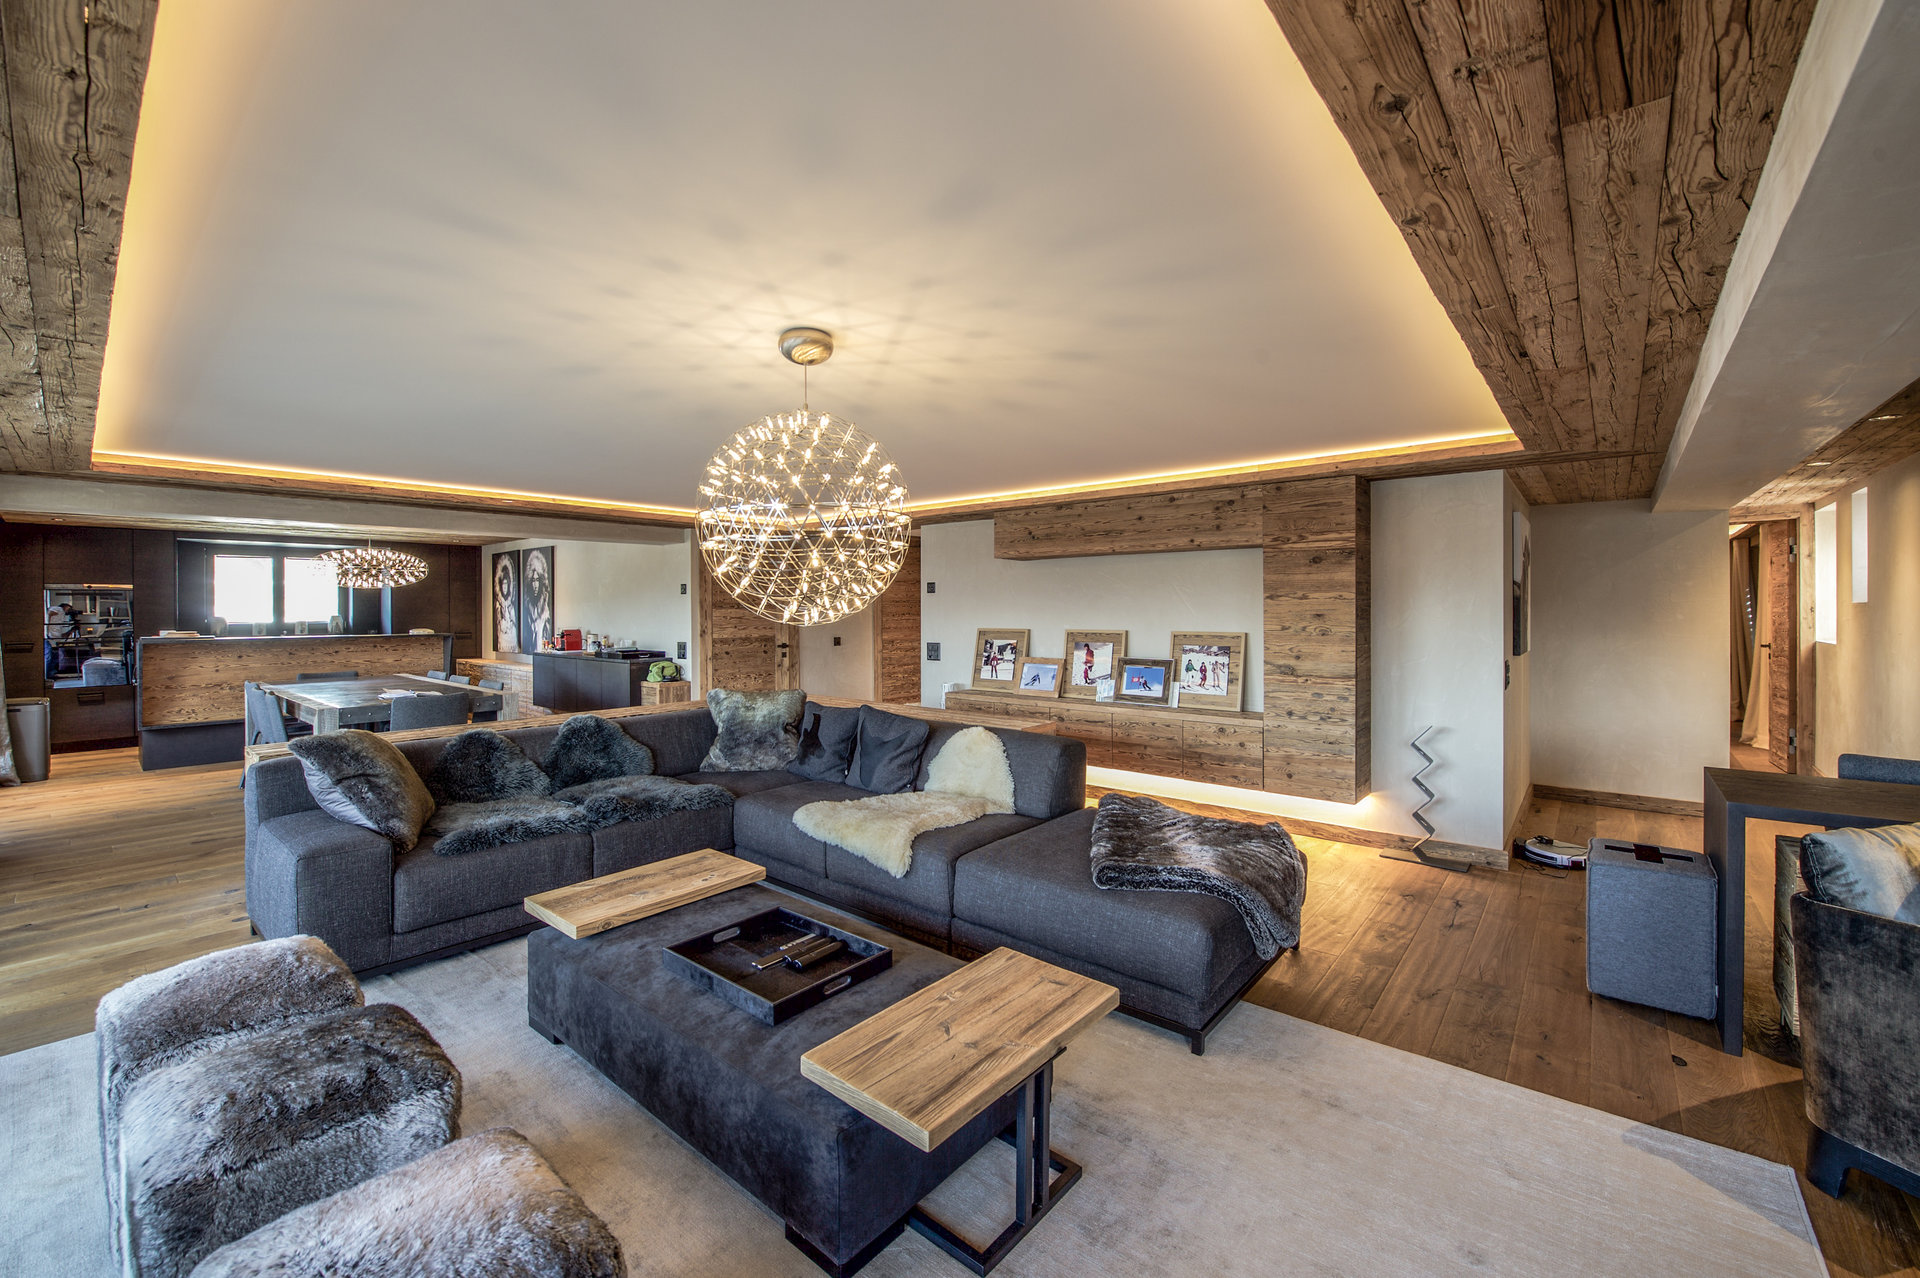 Magnificent apartment in 'Les Moulins' Accommodation in Verbier St-Bernard